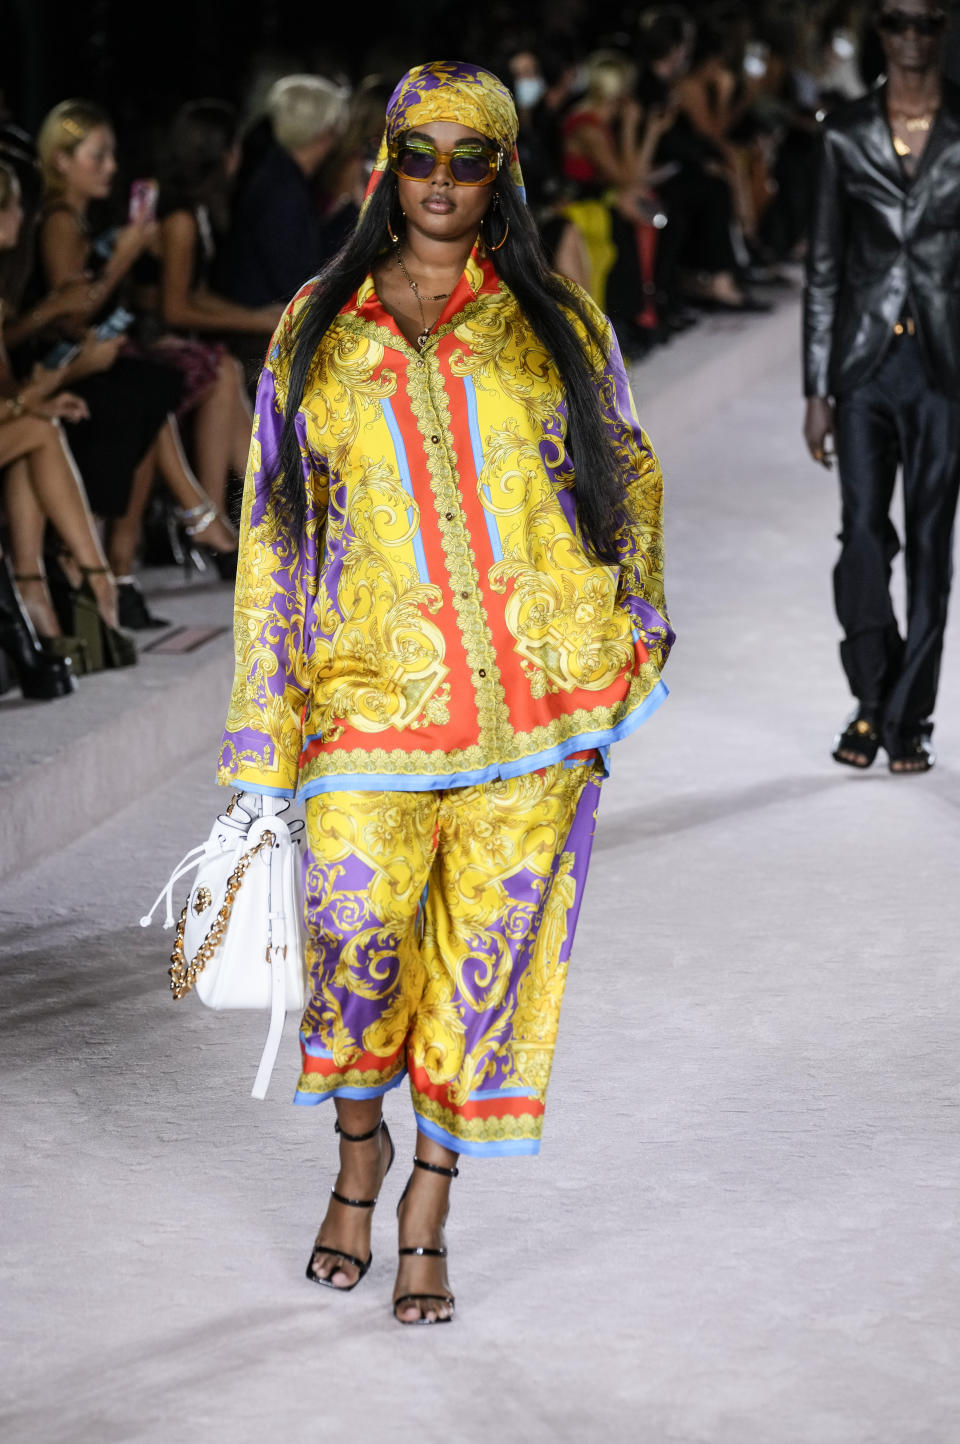 A model wears a creation for the Versace Spring Summer 2022 collection during Milan Fashion Week, in Milan, Italy, Friday, Sept. 24, 2021. (AP Photo/Luca Bruno)